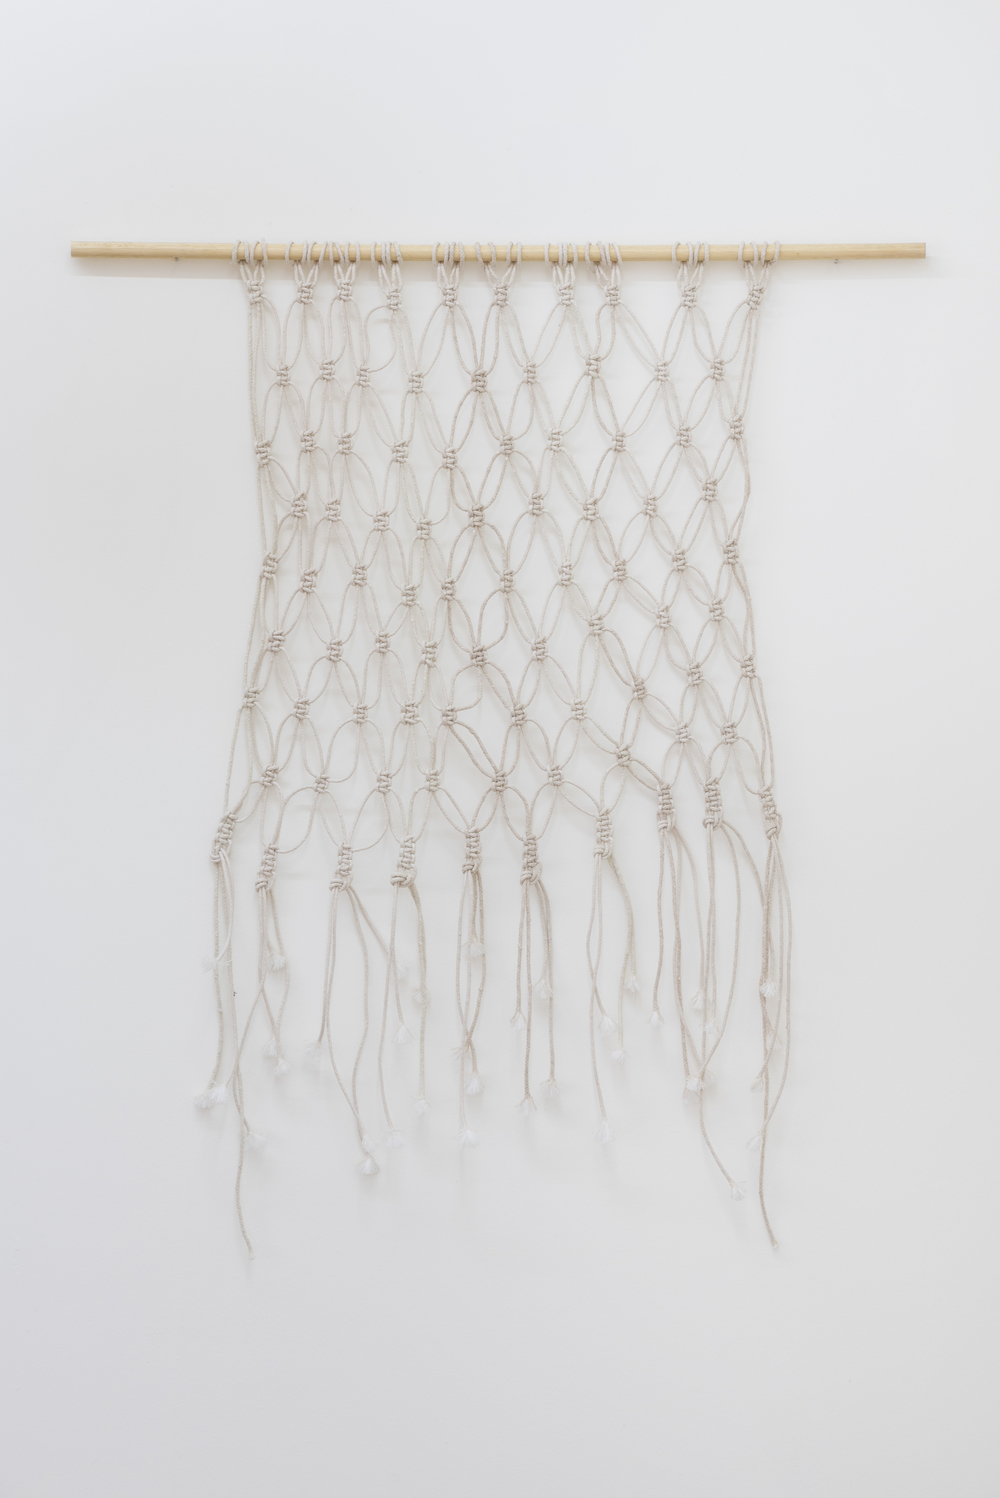 Free People Macrame wall hanging 2016